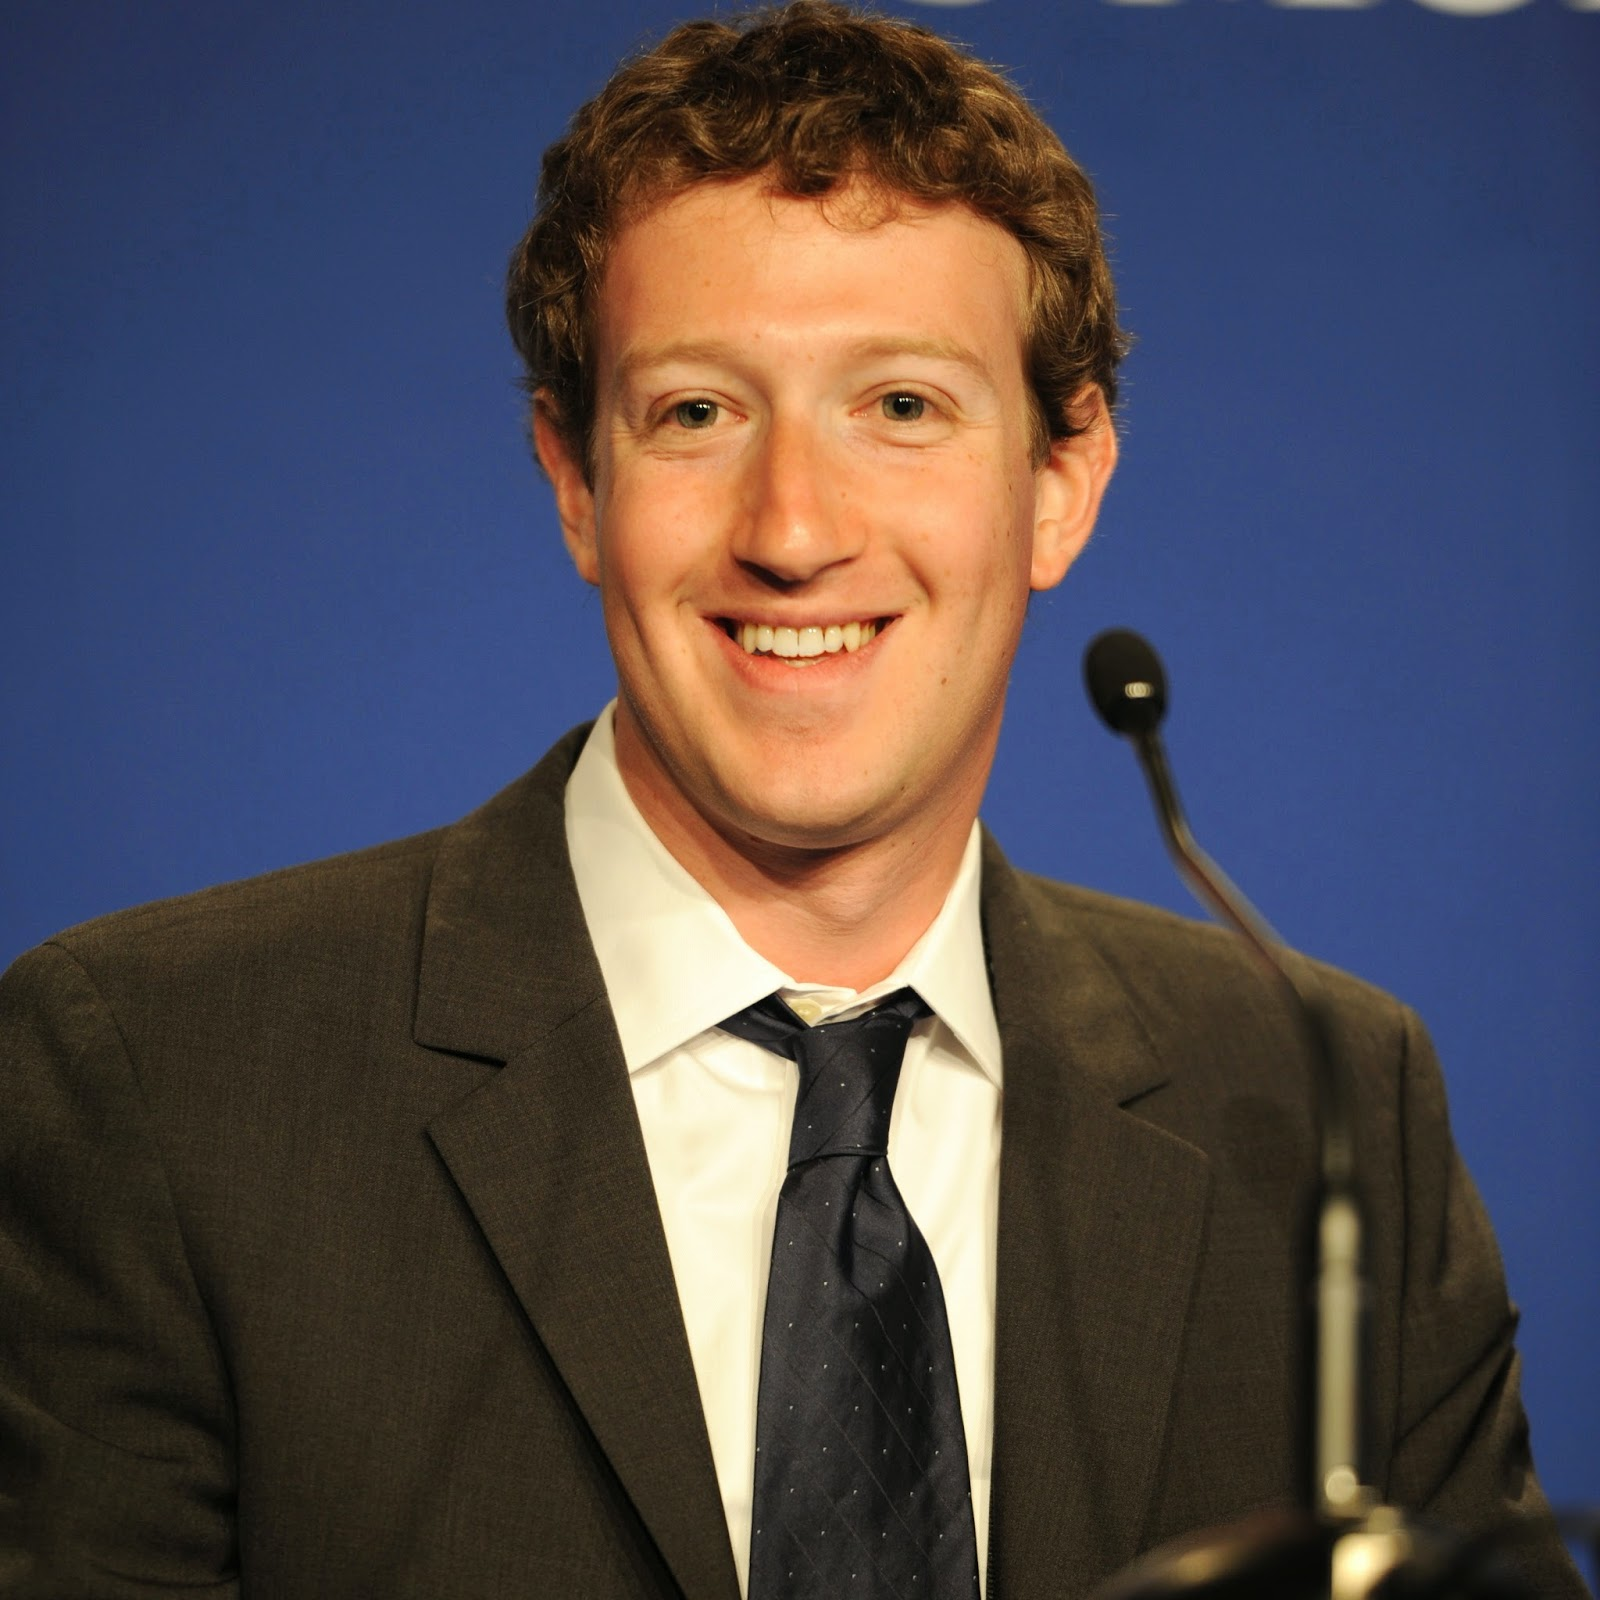 Learning from Zuckerberg's Leadership Style